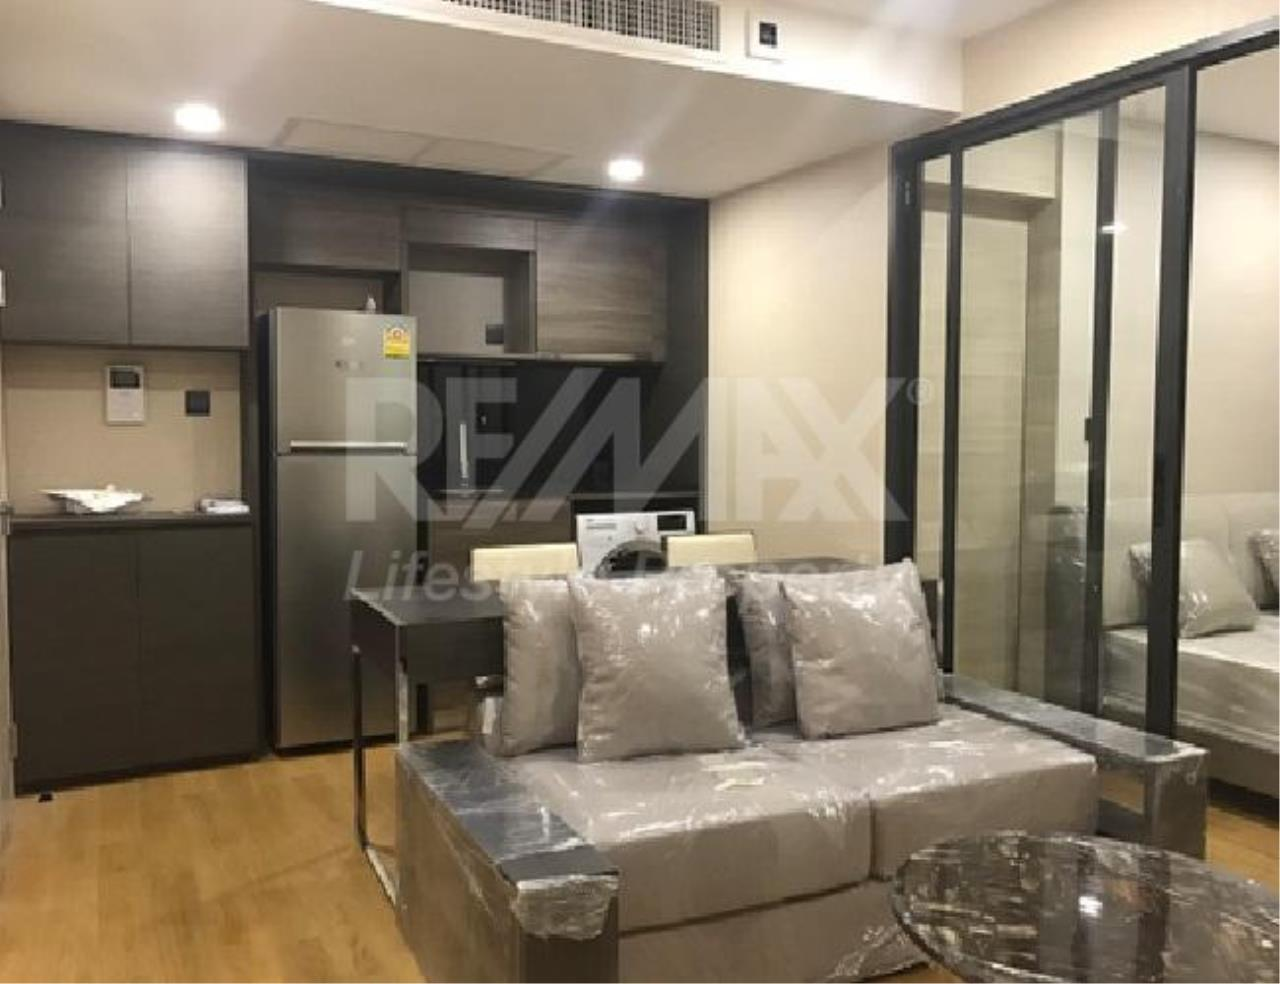 RE/MAX LifeStyle Property Agency's Klass Condo Langsuan 1